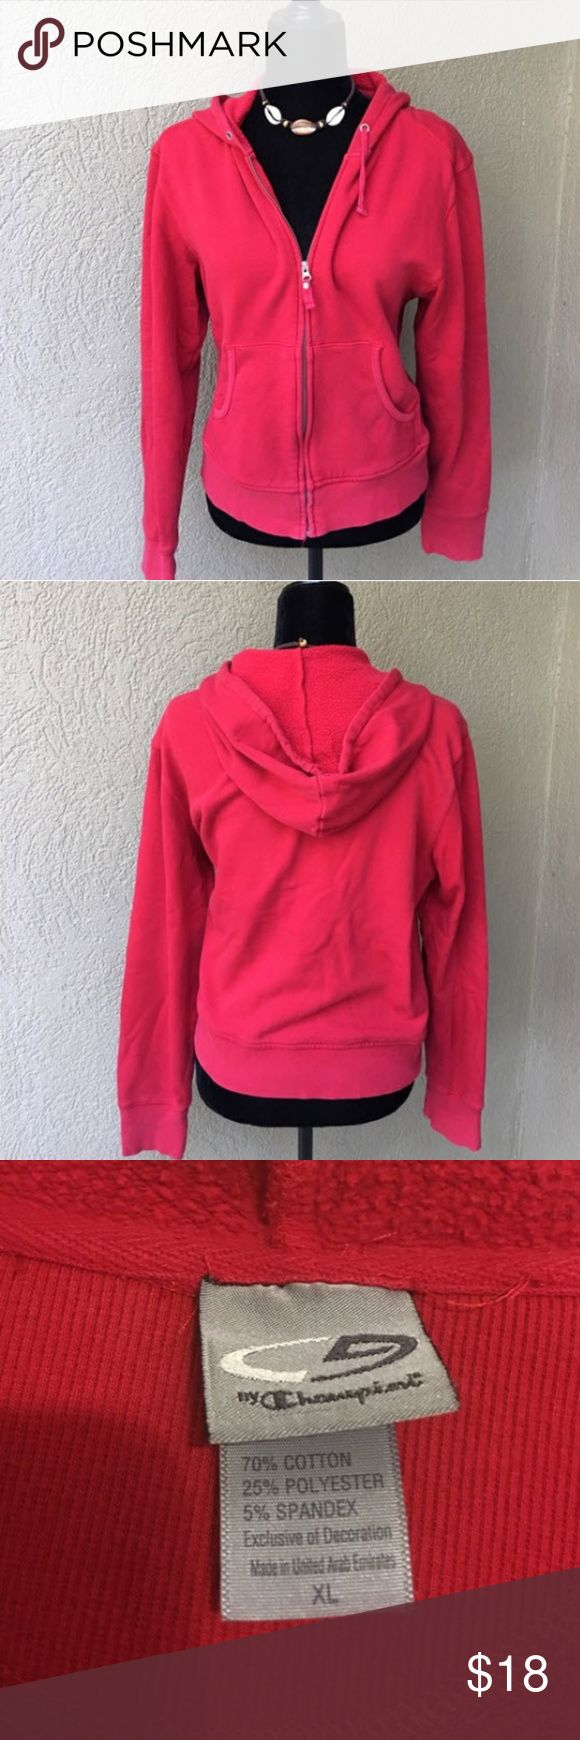 C9 by Champion Hooded sweatshirt jacket C9 by Champion red hooded zipper front sweatshirt jacket with front pockets.   ✅I ship same or next day ✅Bundle for discount C9 by Champion Jackets & Coats